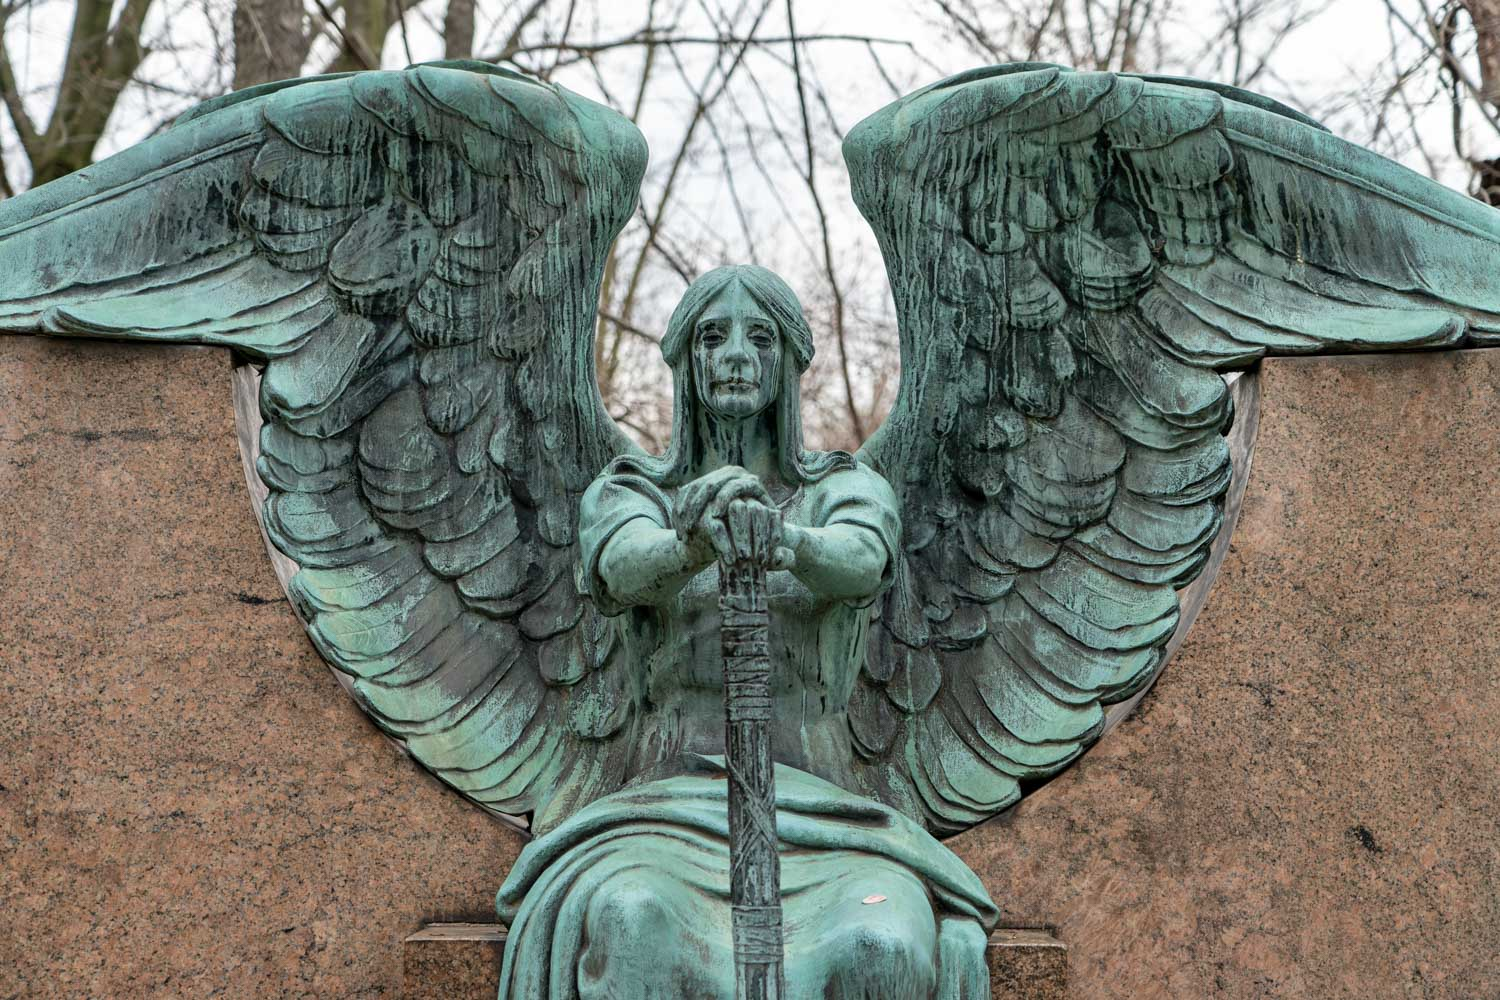 5 Reasons to Visit Lake View Cemetery (Yes, Just For Fun!)